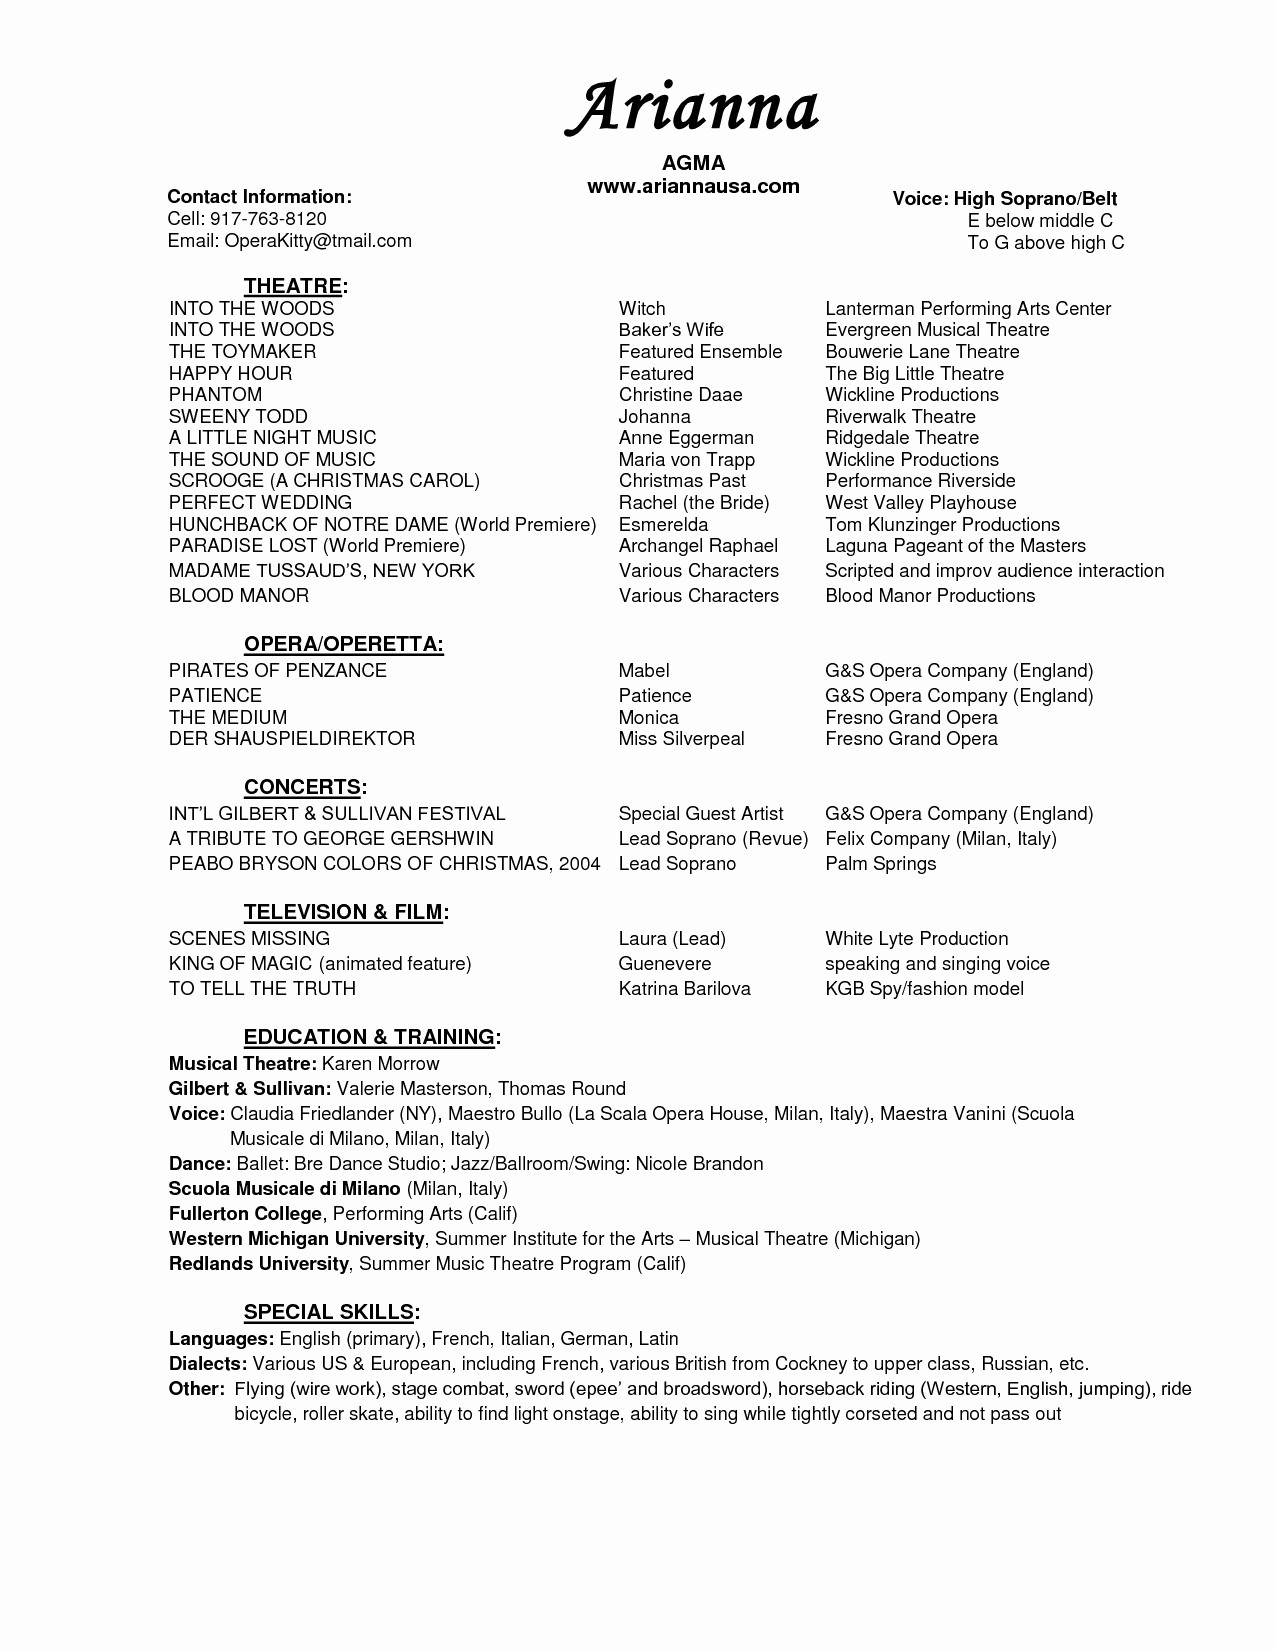 performing arts resume template example-Musicians Resume Template Save Musical Theatre Resume Template Unique Resume Music 0d Wallpapers 49 13-f